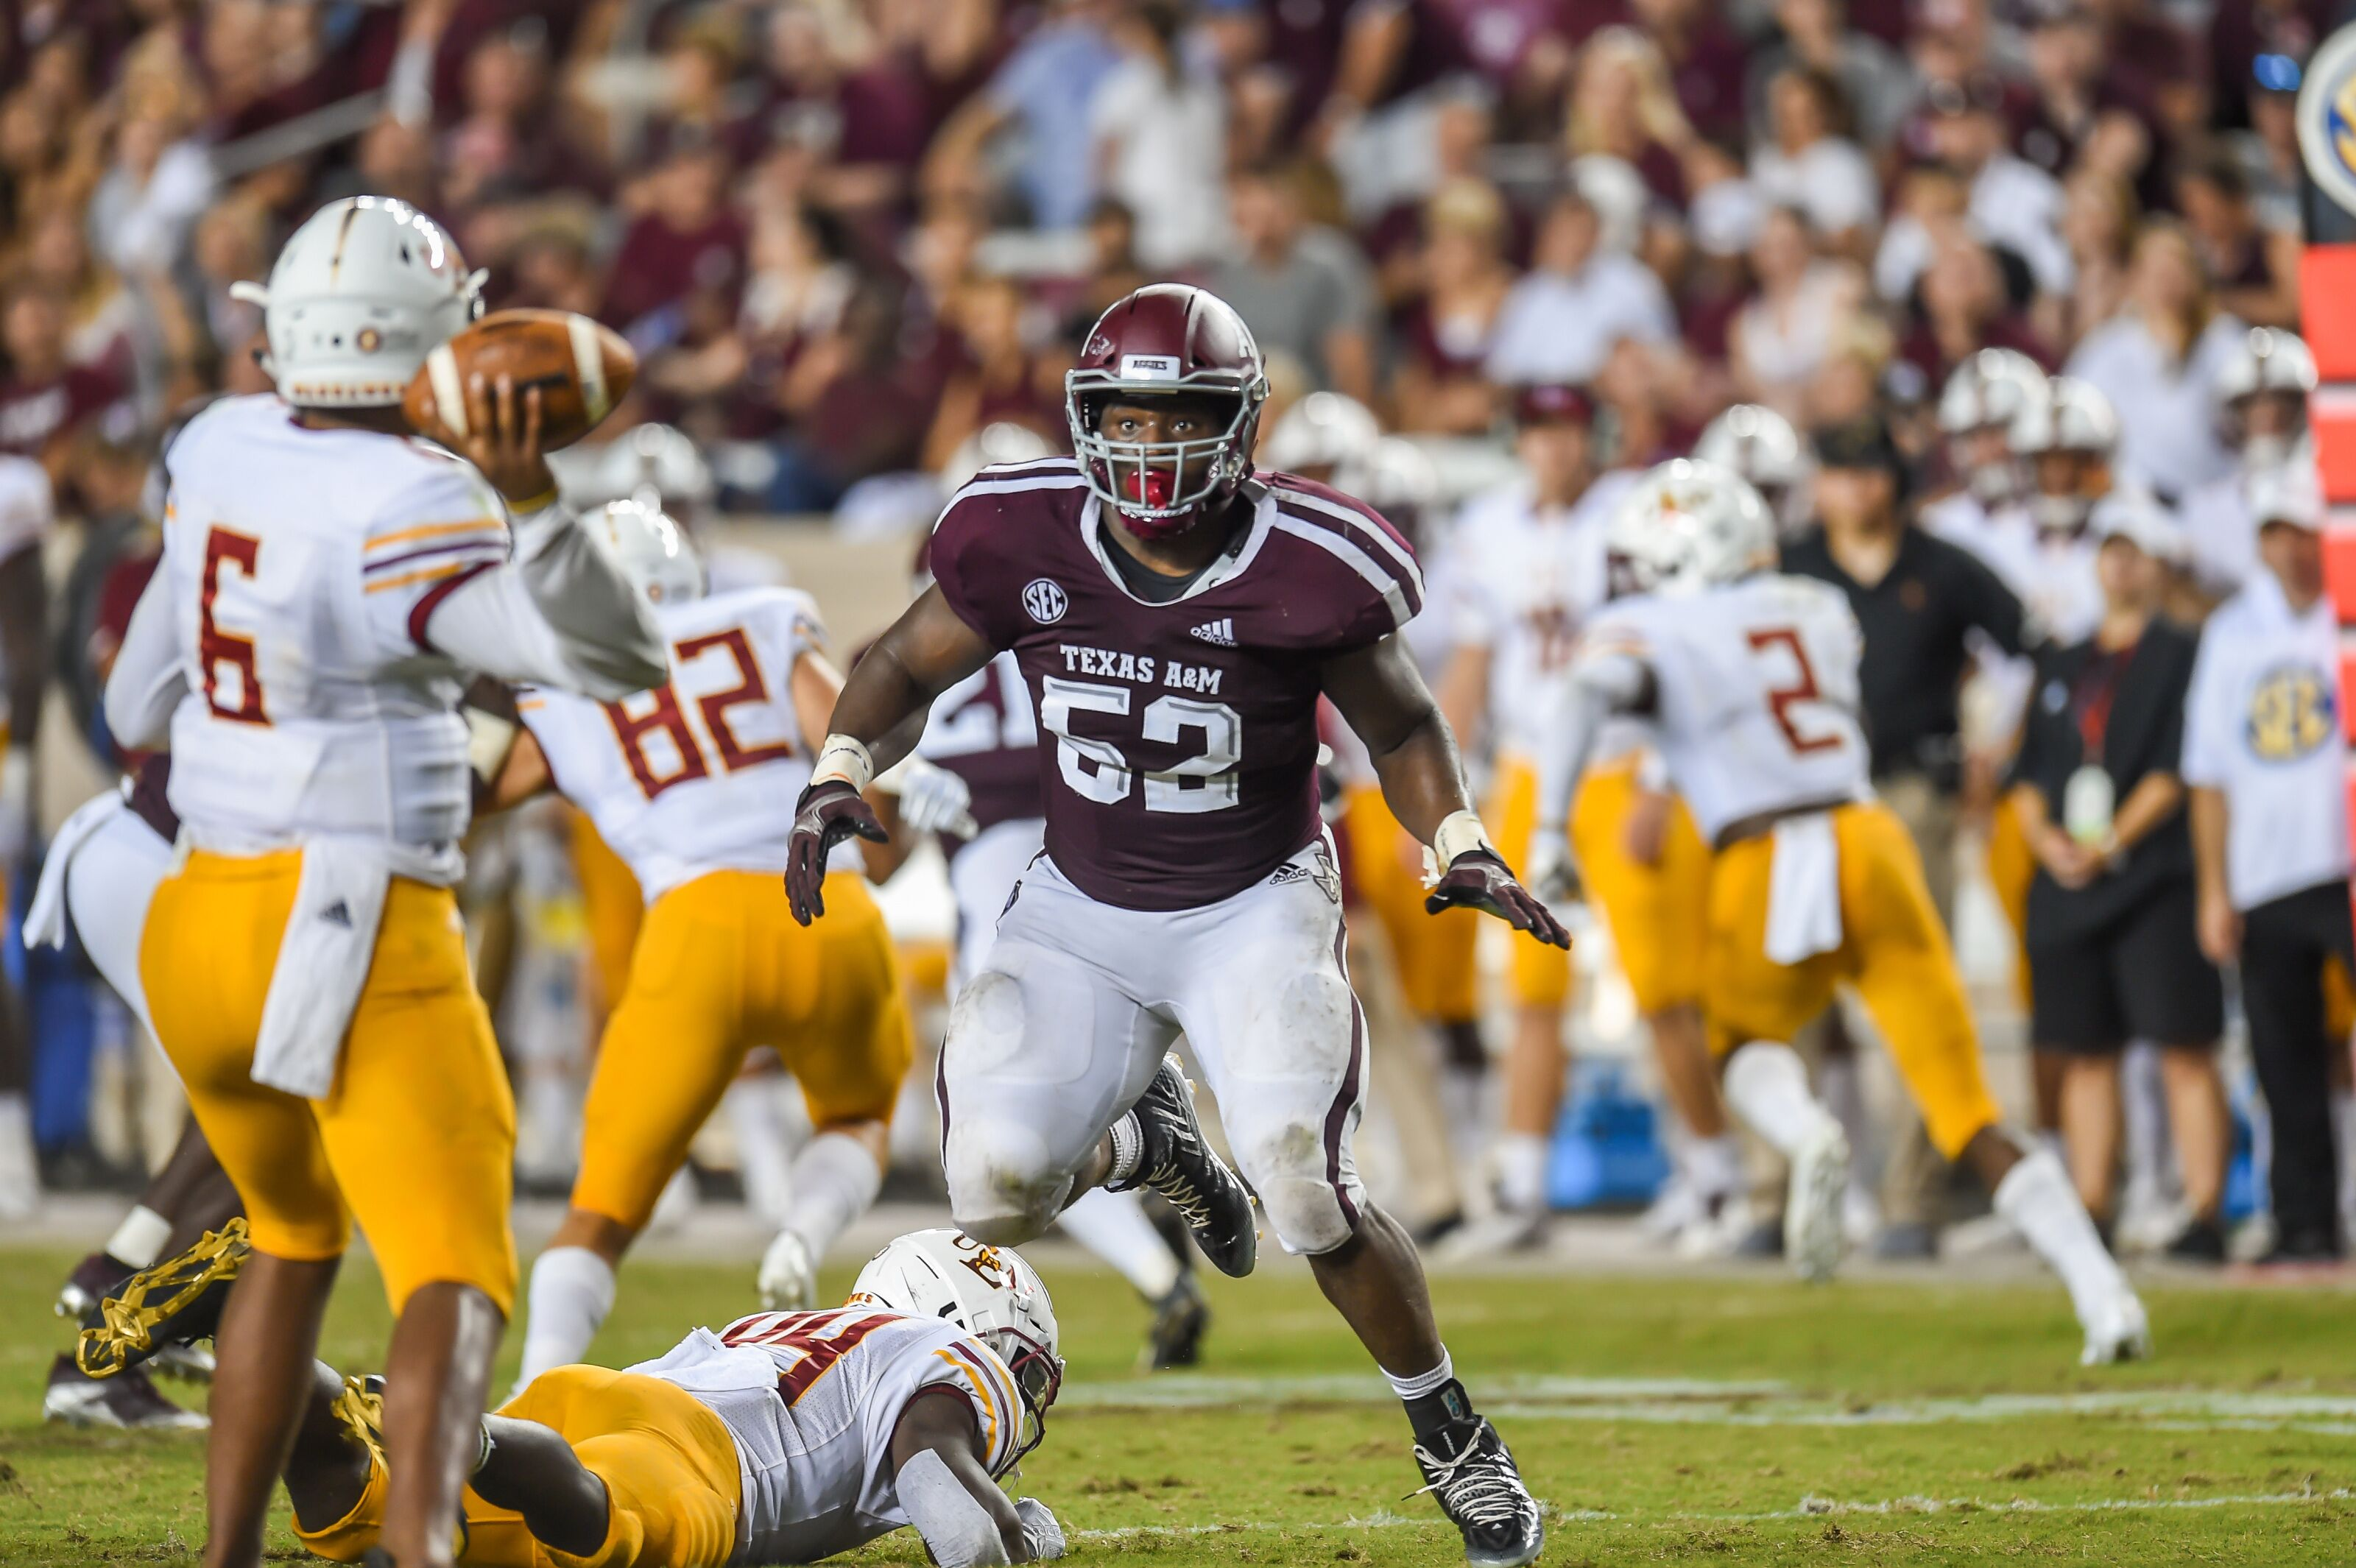 Texas A&M football: Spring MVPs announced and one comes as a surprise